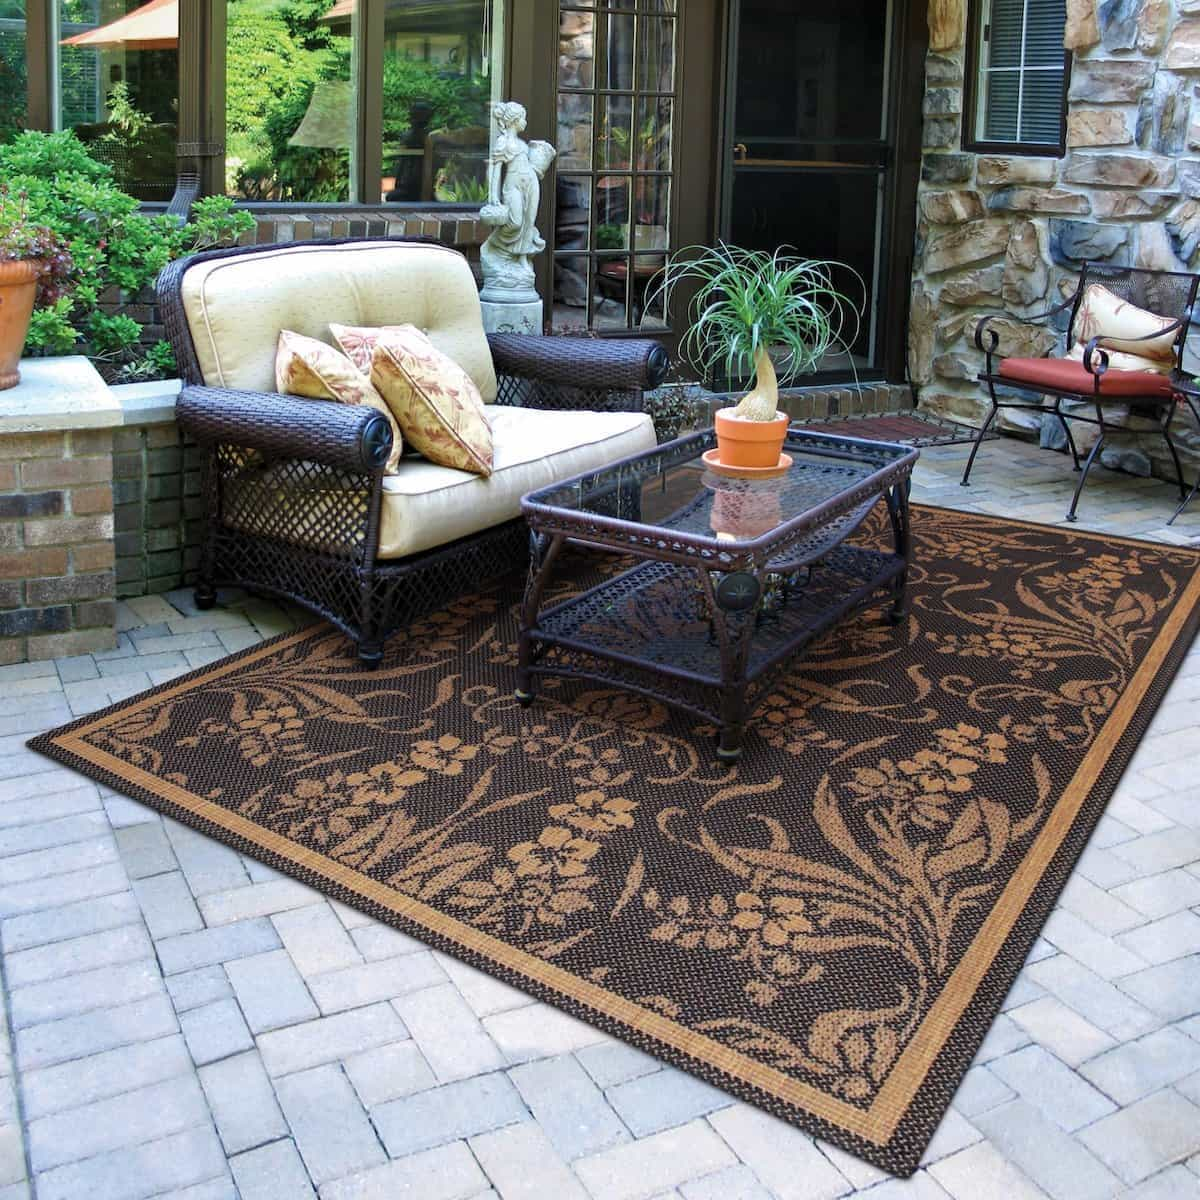 Brown Large Outdoor Rugs For Patios Colors (Image 5 of 15)